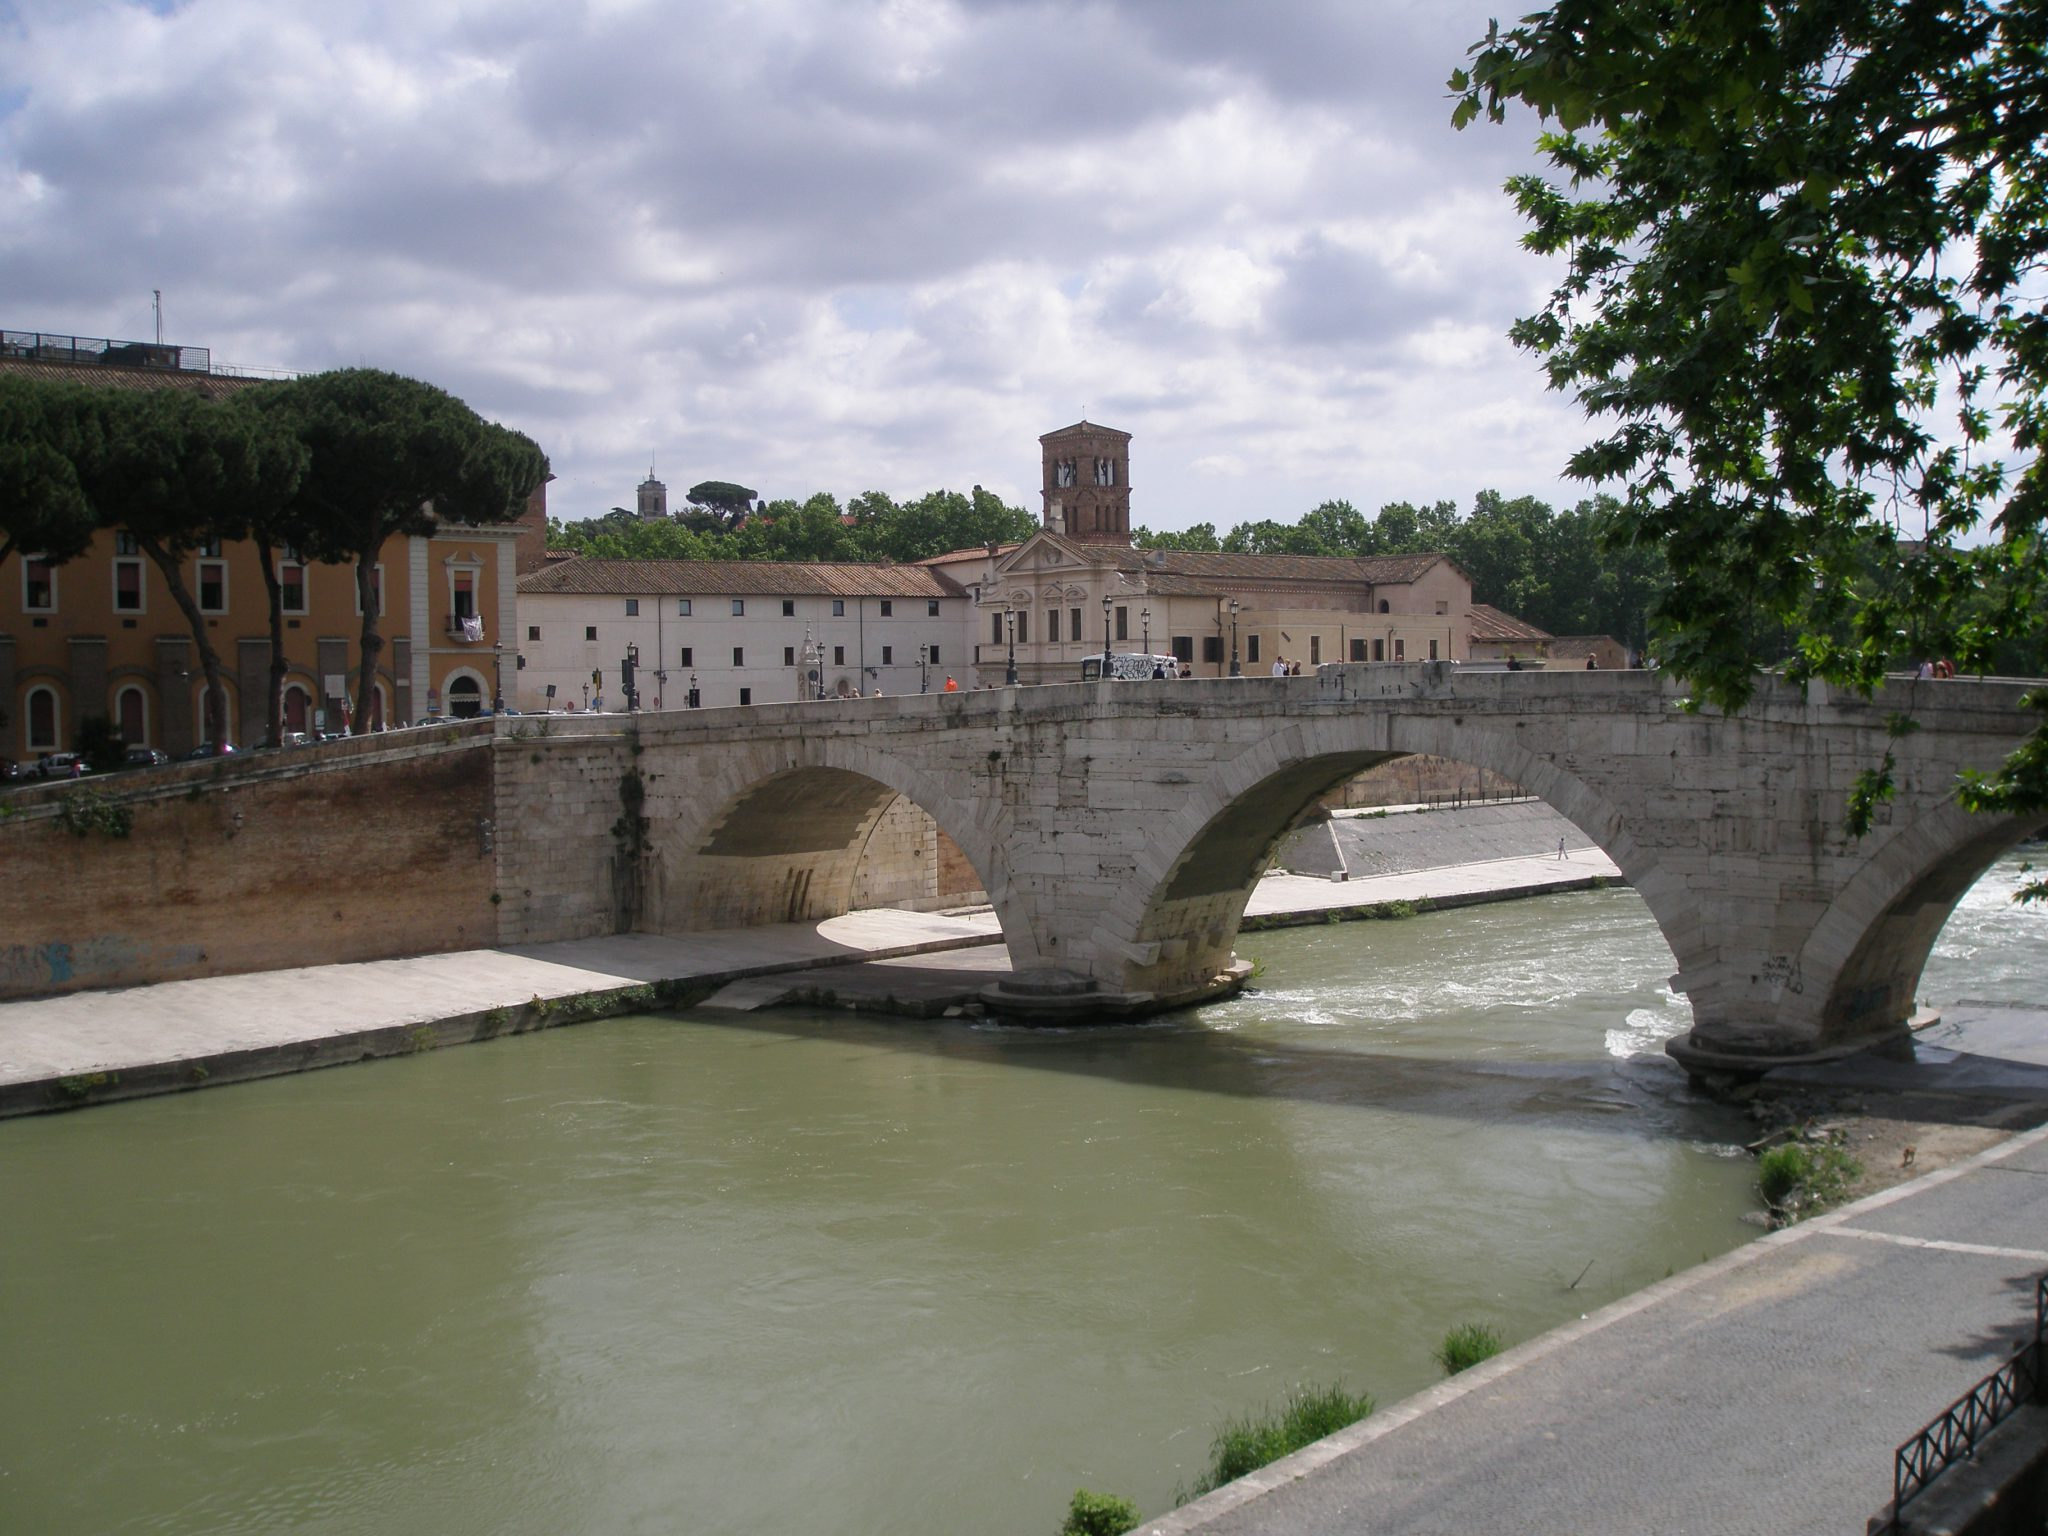 From the Trastevere-side of the Tiber: a view of Ponte Cestio, and of Isloa Tiberina itself.